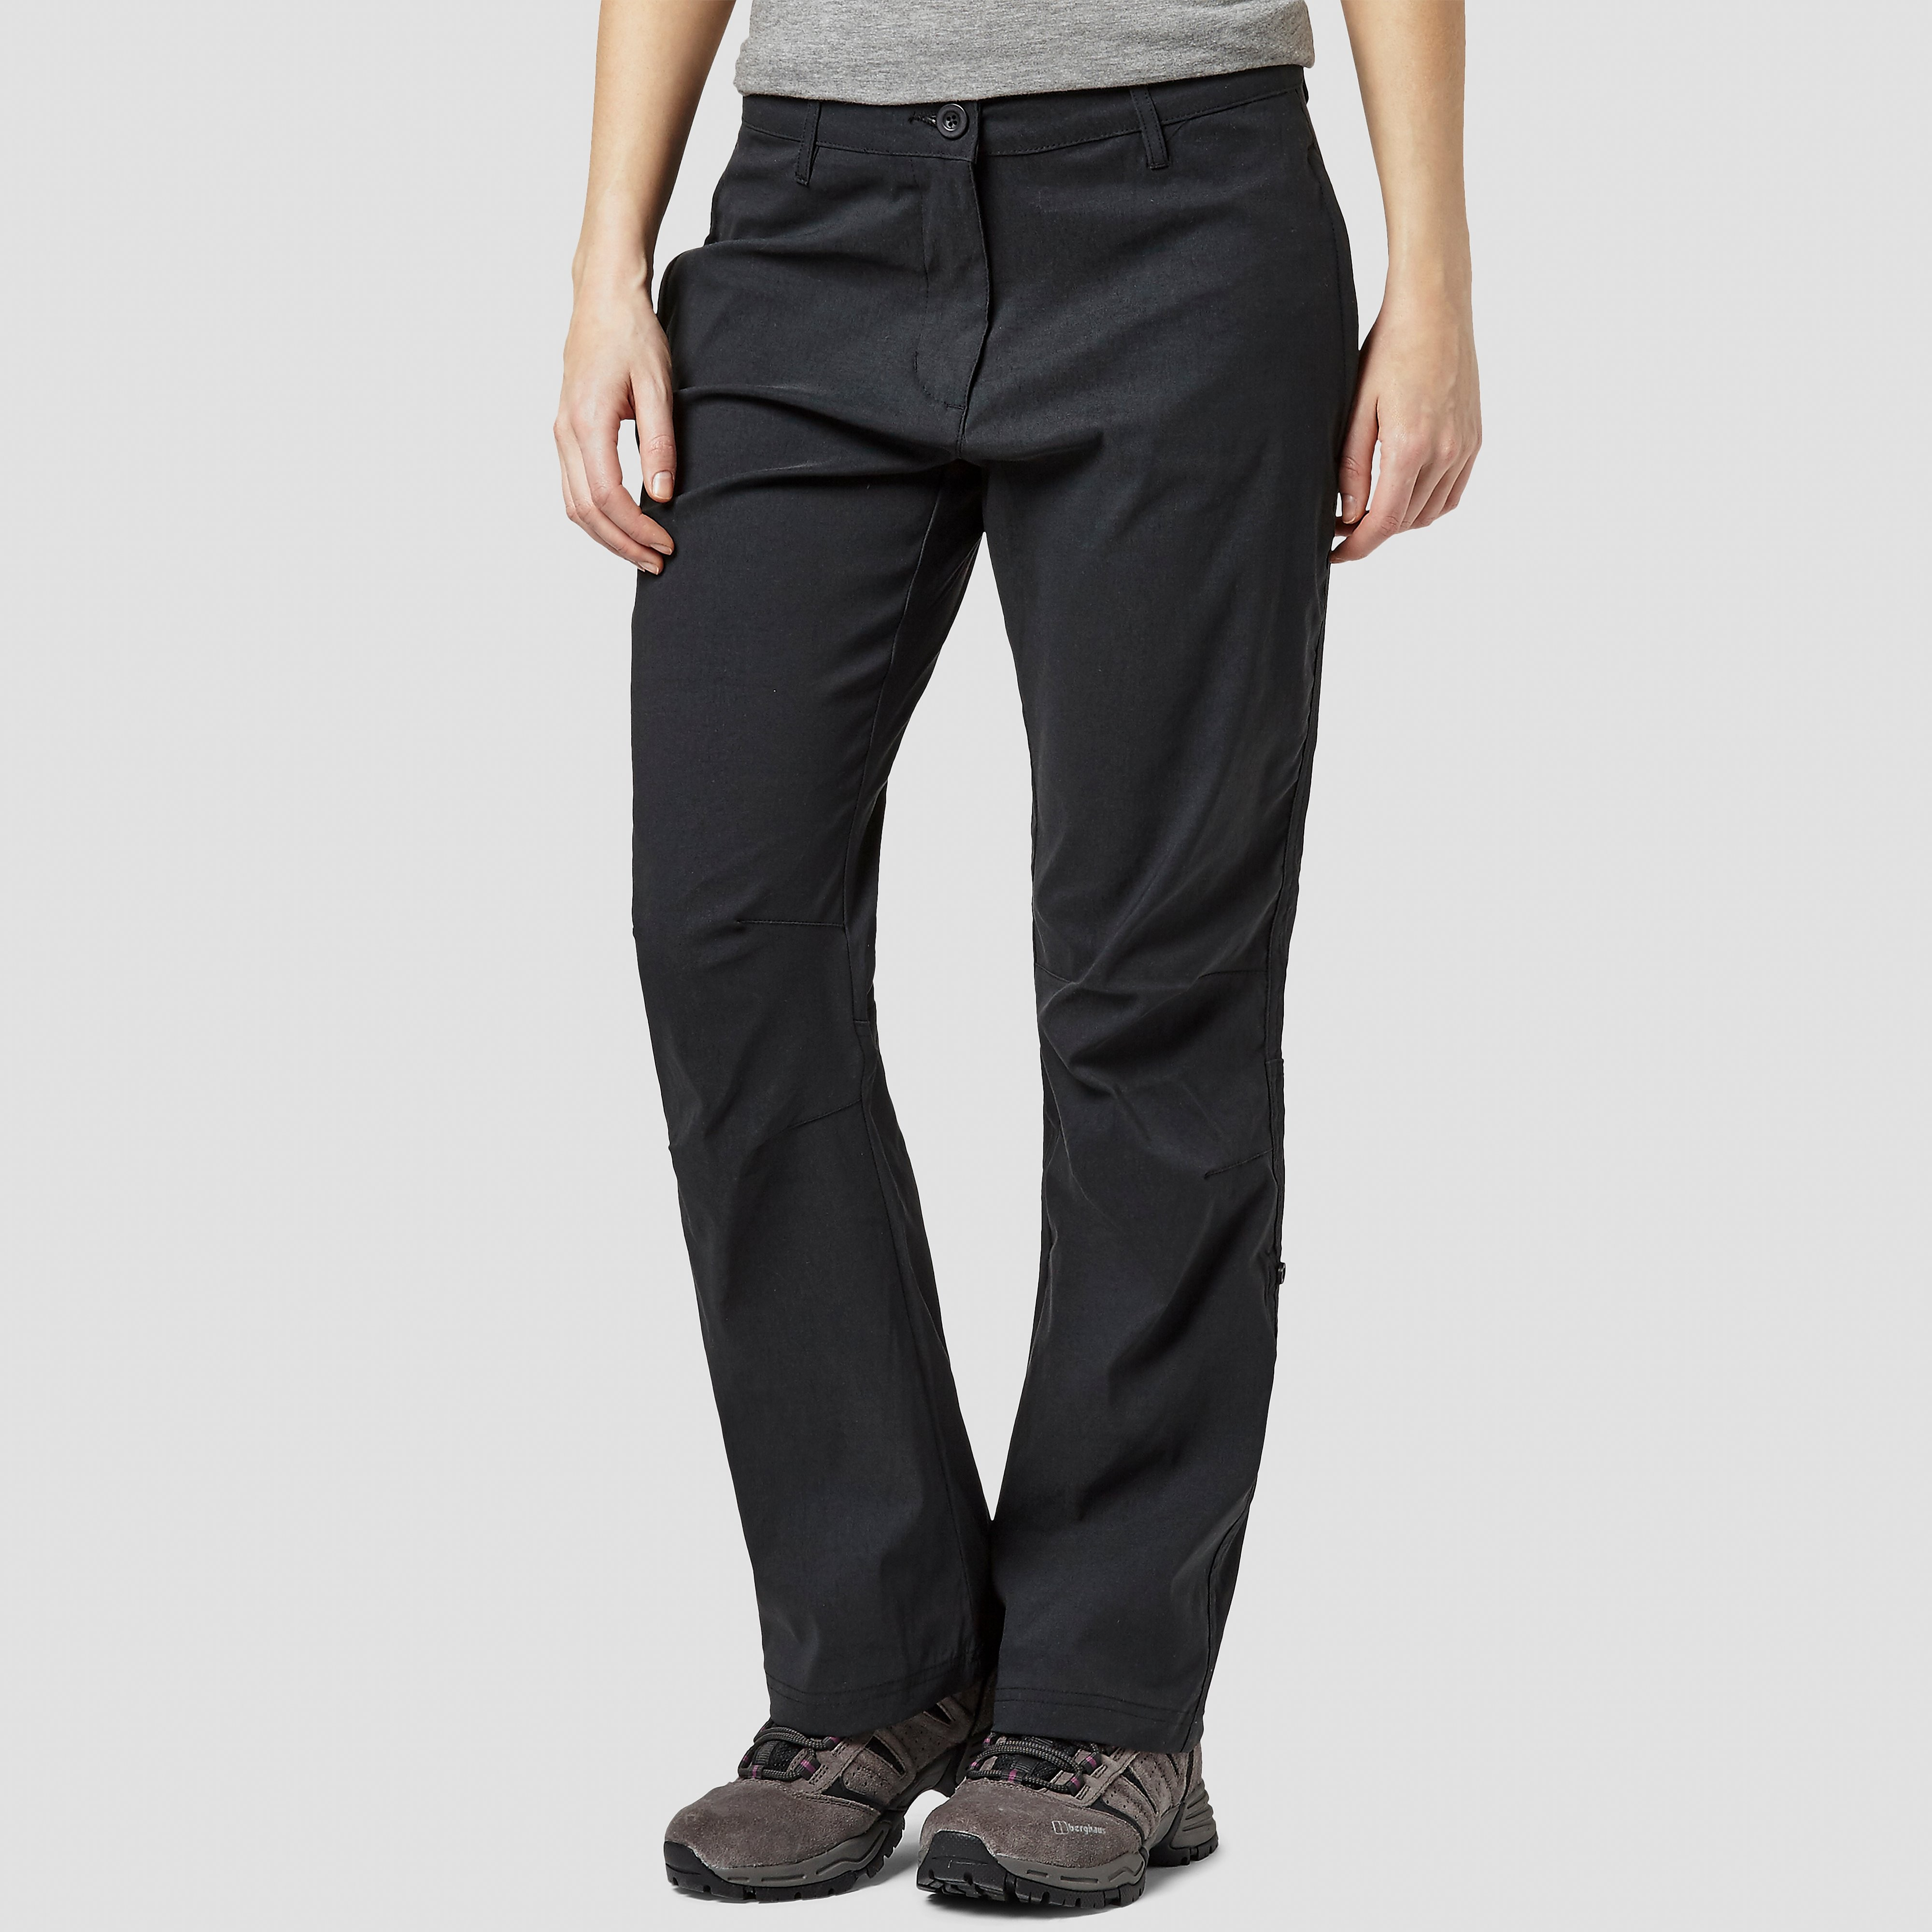 Peter Storm Women's Stretch Roll Up Trousers - Regular